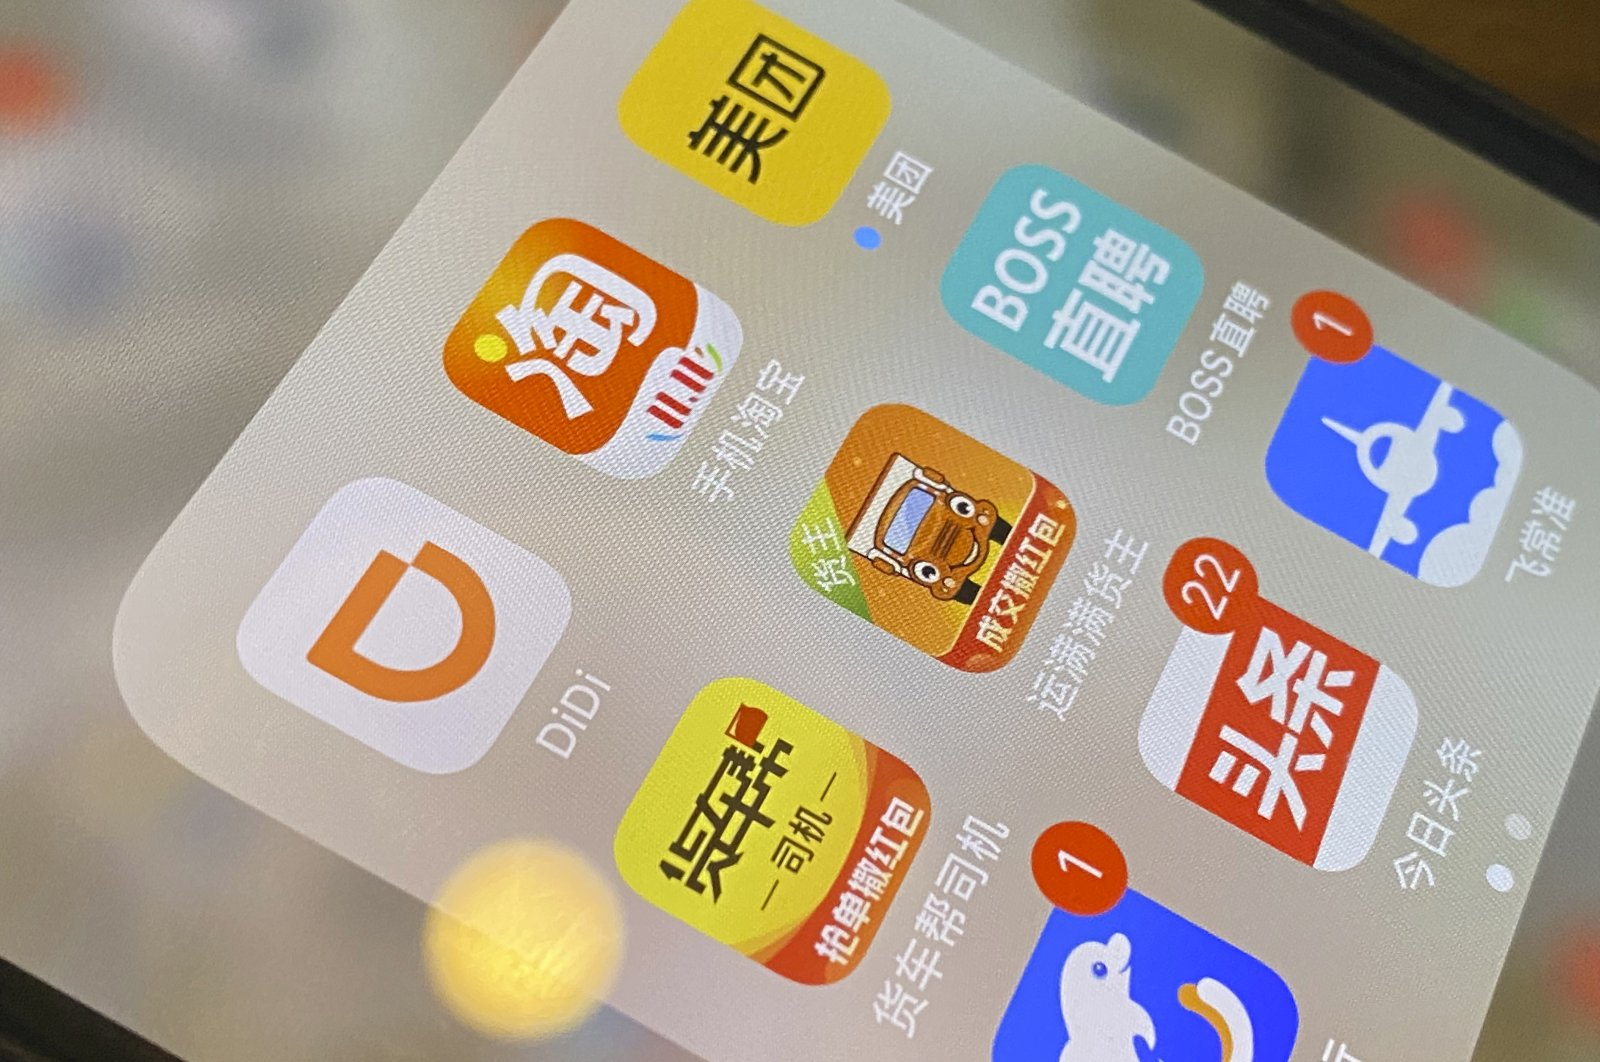 The ride-hailing app Didi is seen near other Chinese apps on a phone in Beijing, China, Monday, July 5, 2021. (AP Photo)